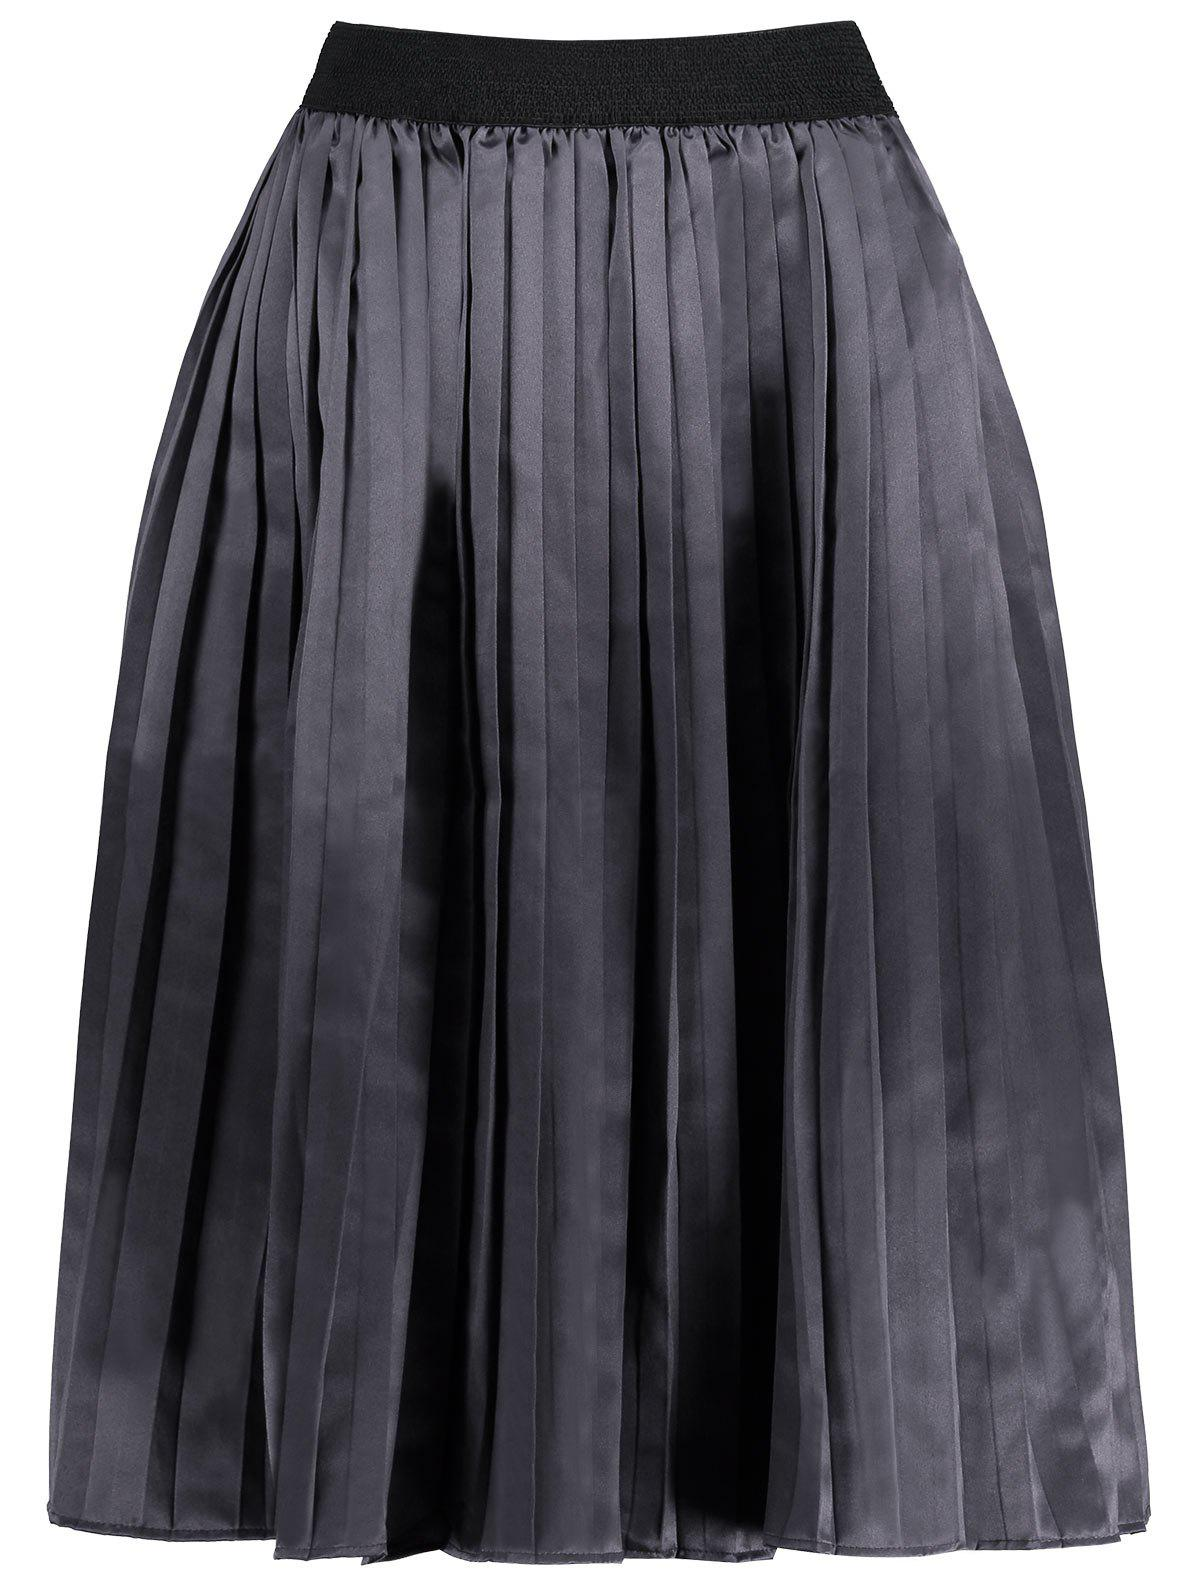 Plus Size Pleated Midi Elastic Waist Skirt - SMASHING 4XL